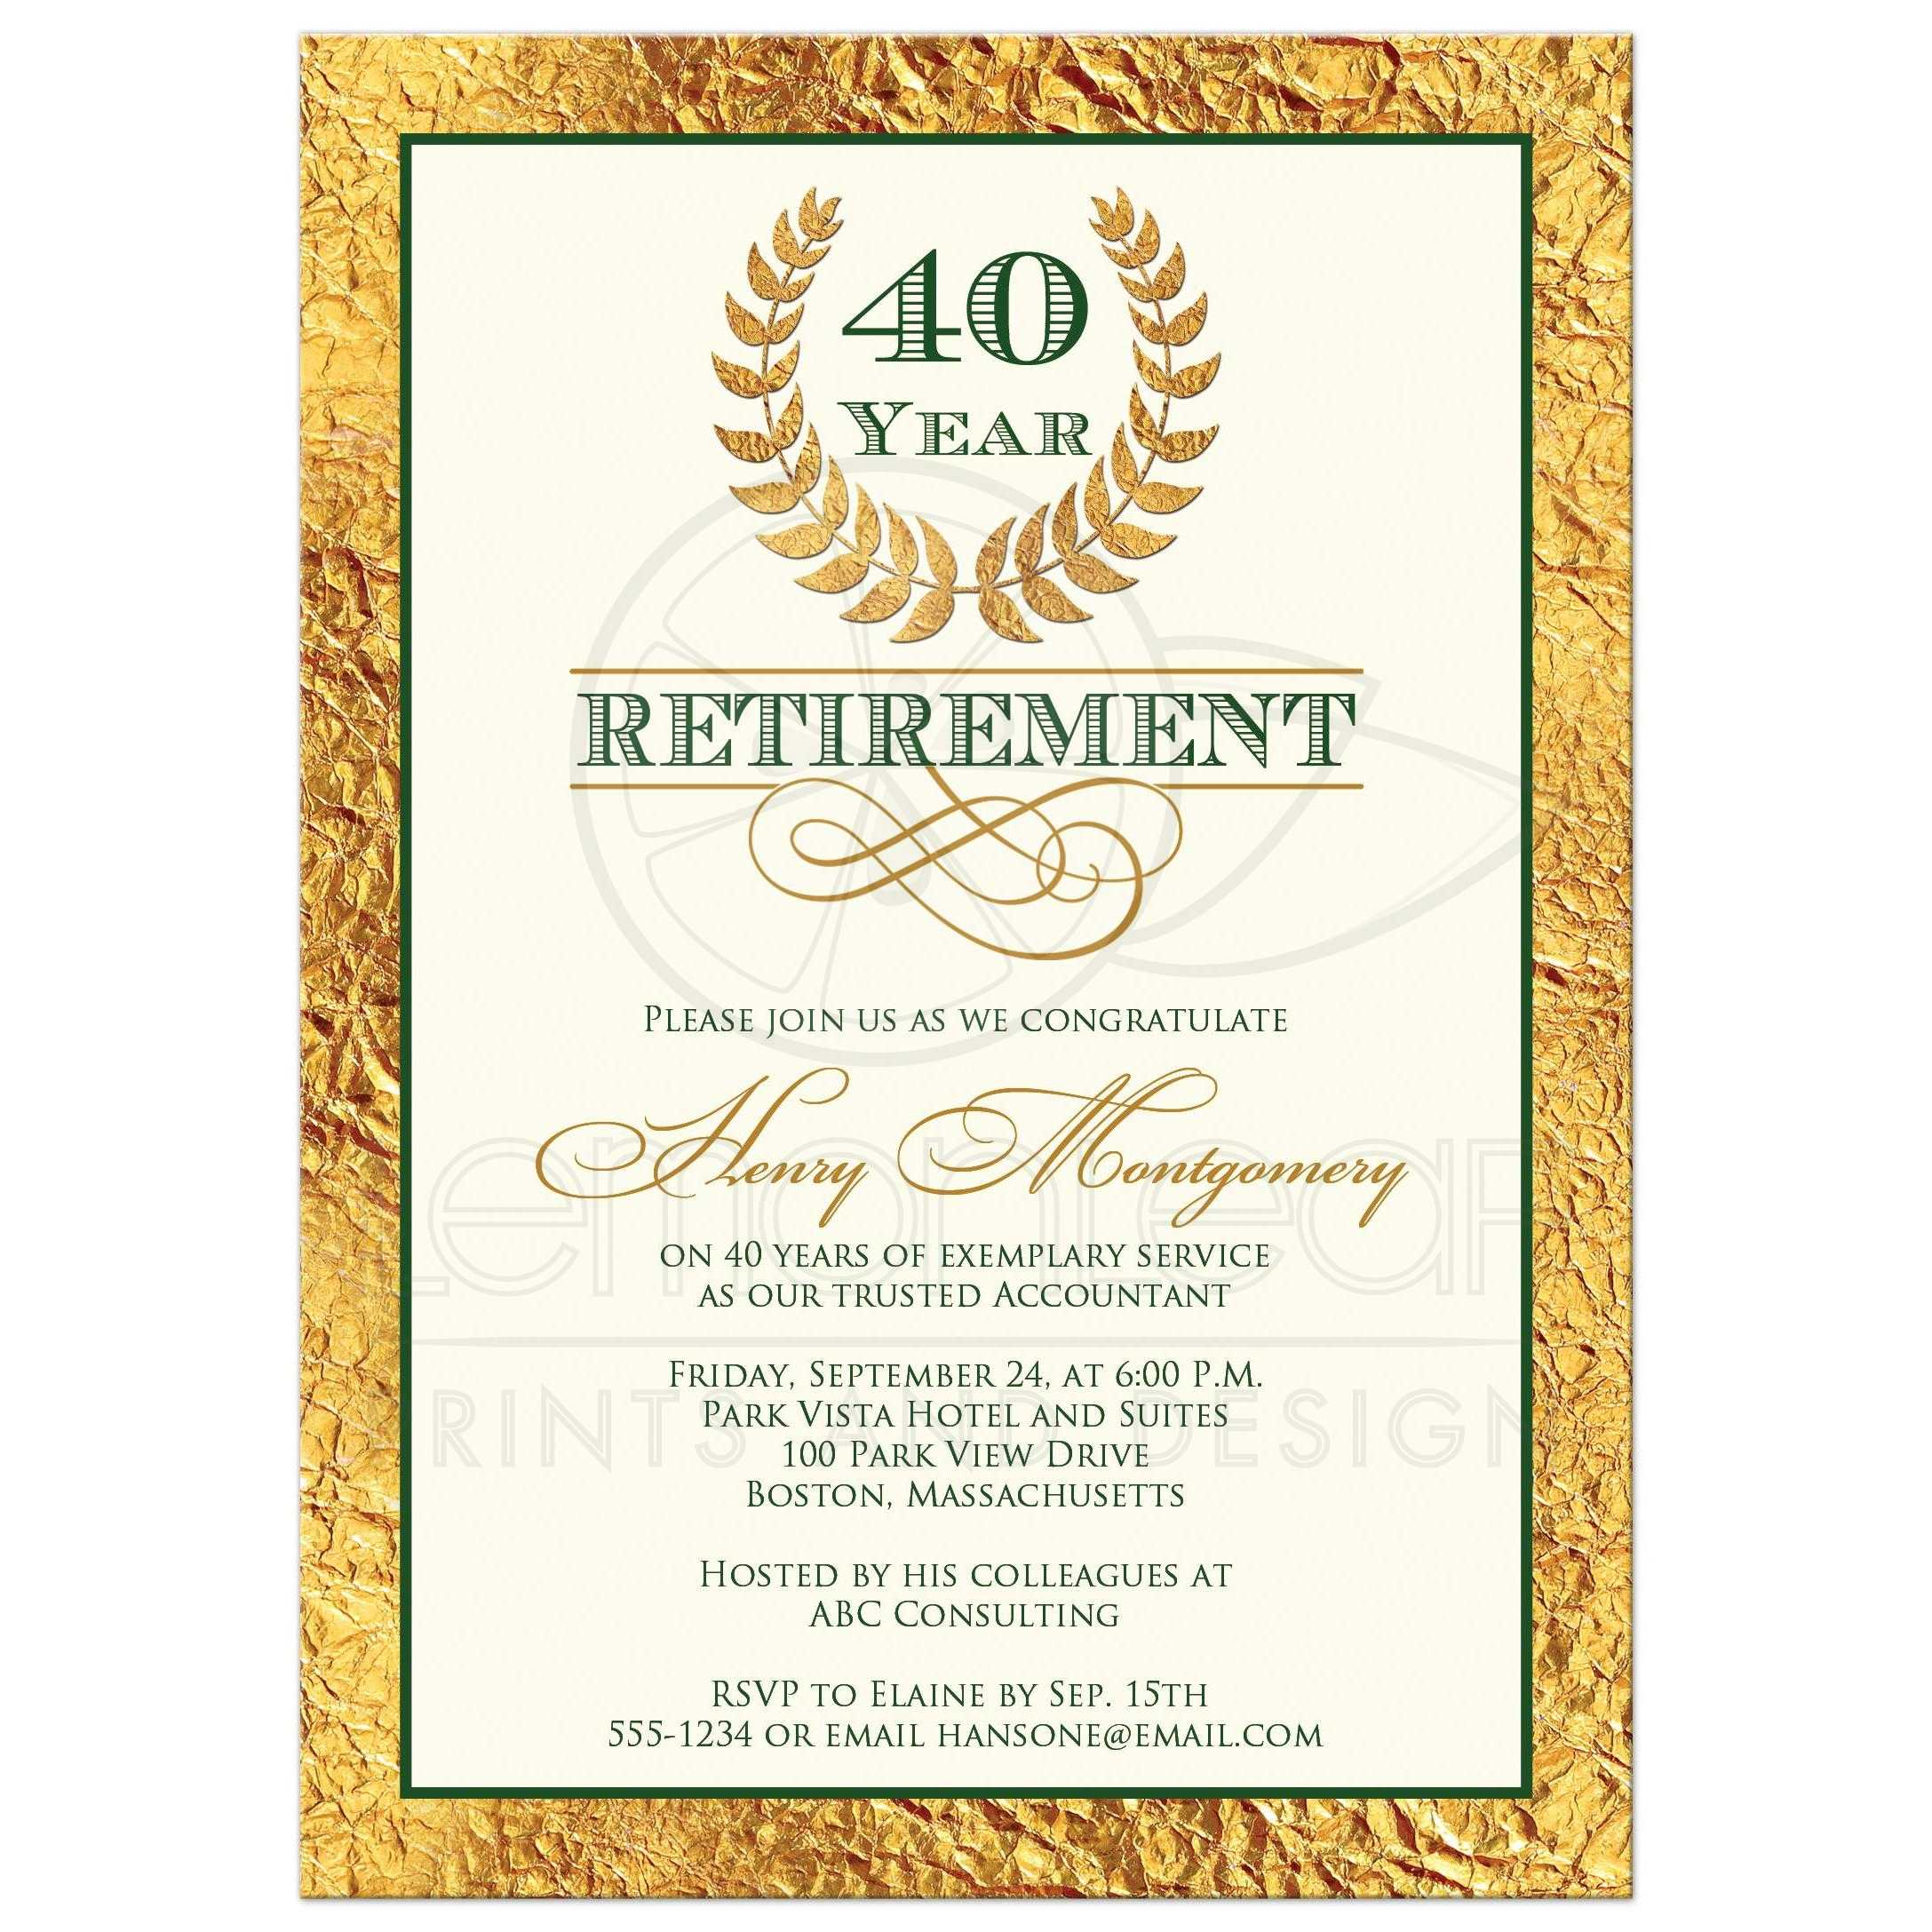 40 Year Retirement Party Invitation | Laurel Wreath | Distinguished ...